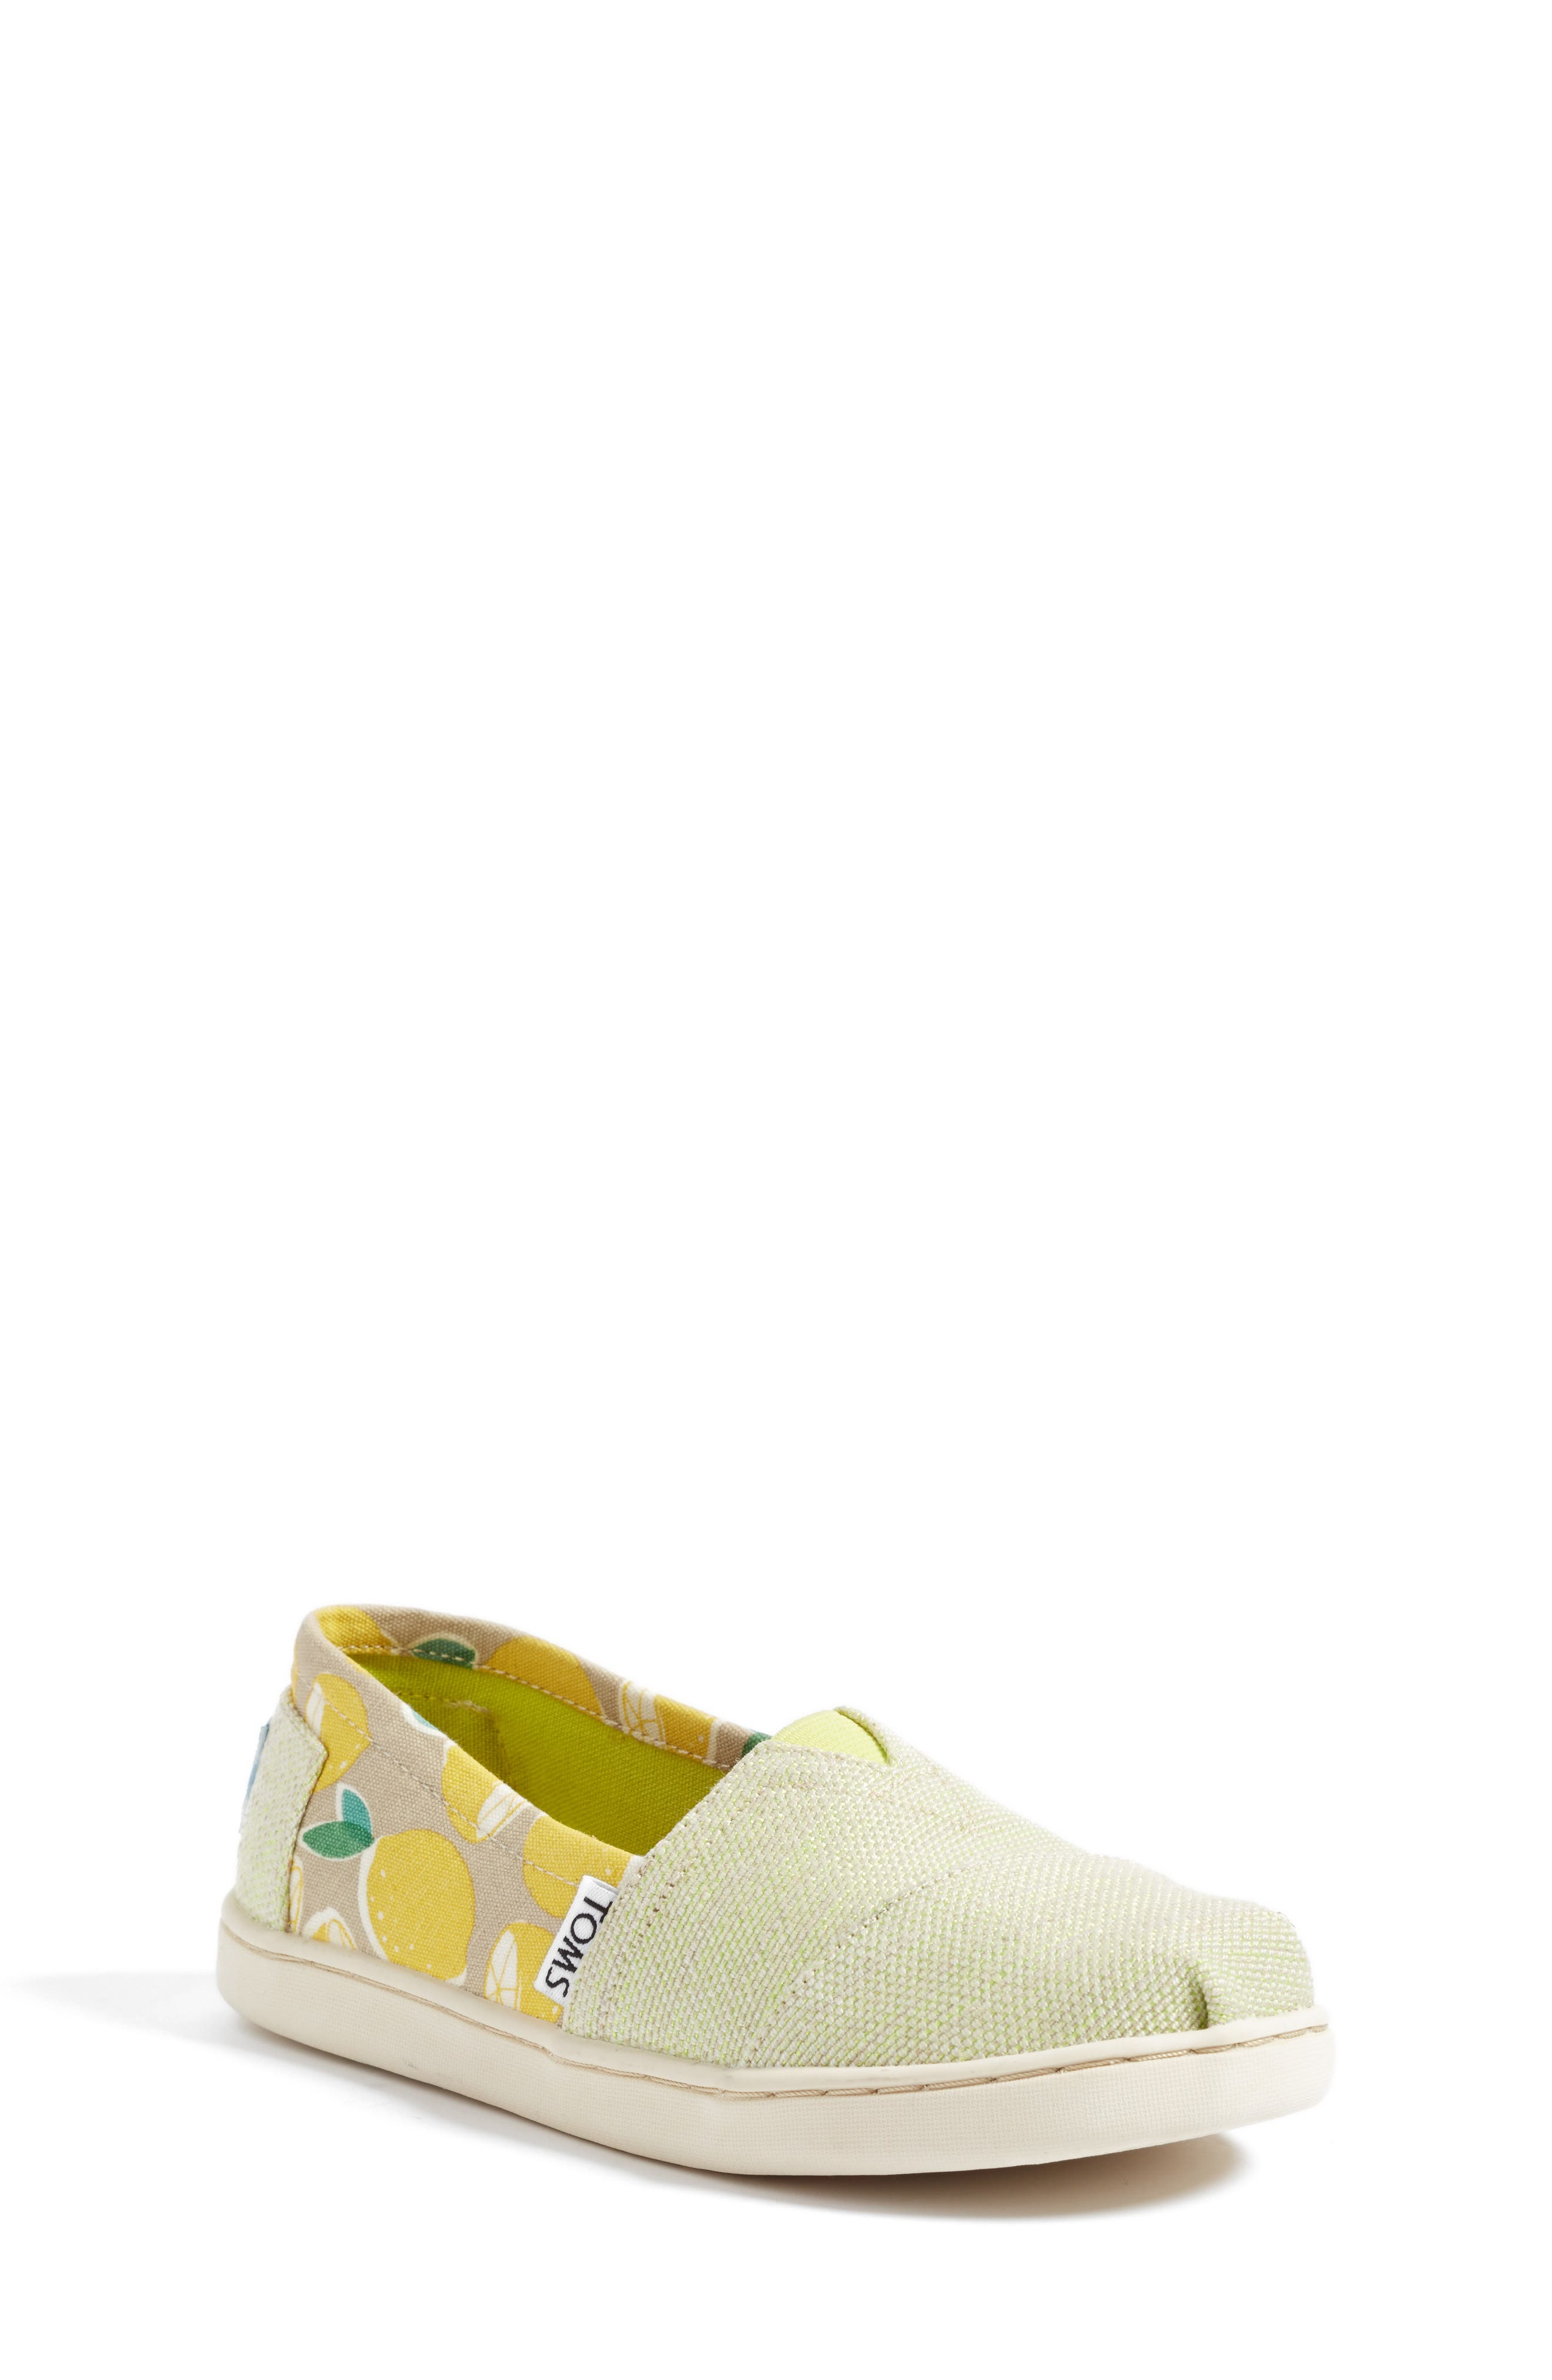 TOMS Classic Print Slip-On (Baby, Walker, Toddler, Little Kid & Big Kid)